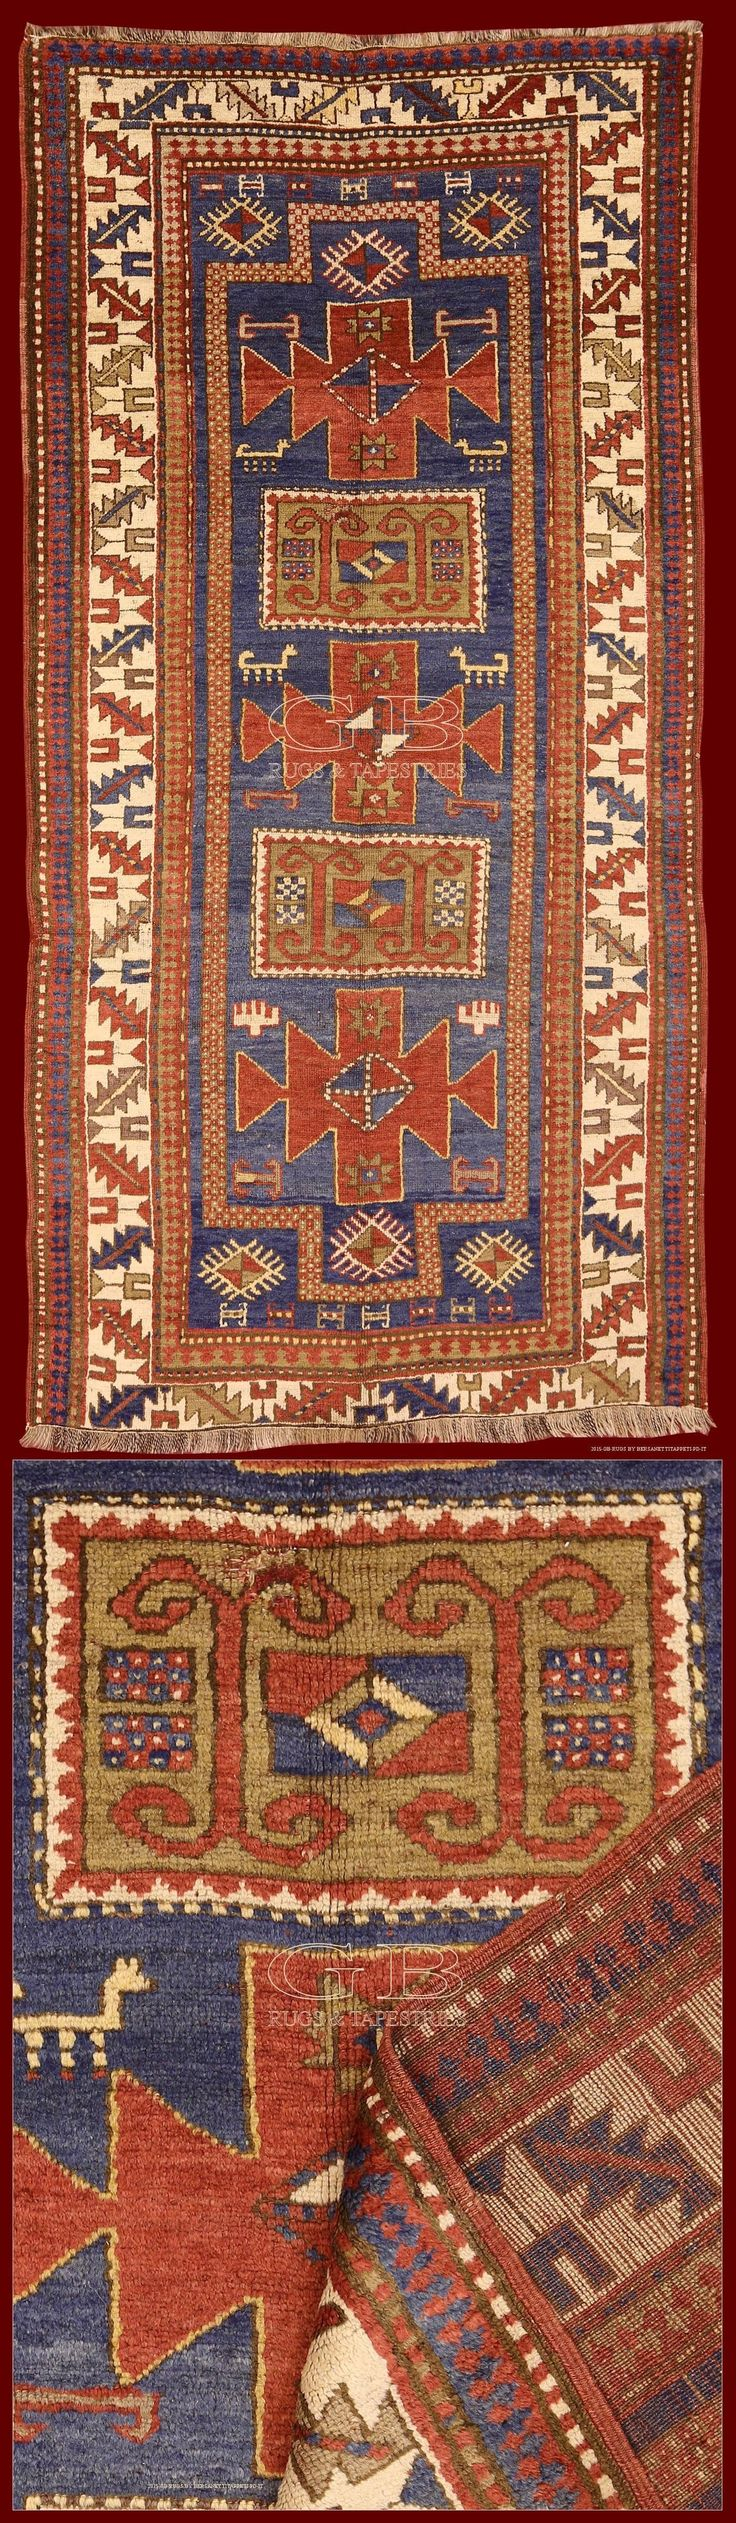 ANTIQUE KAZAK RUG 273 x 134 | 141503458748 | GB Rugs